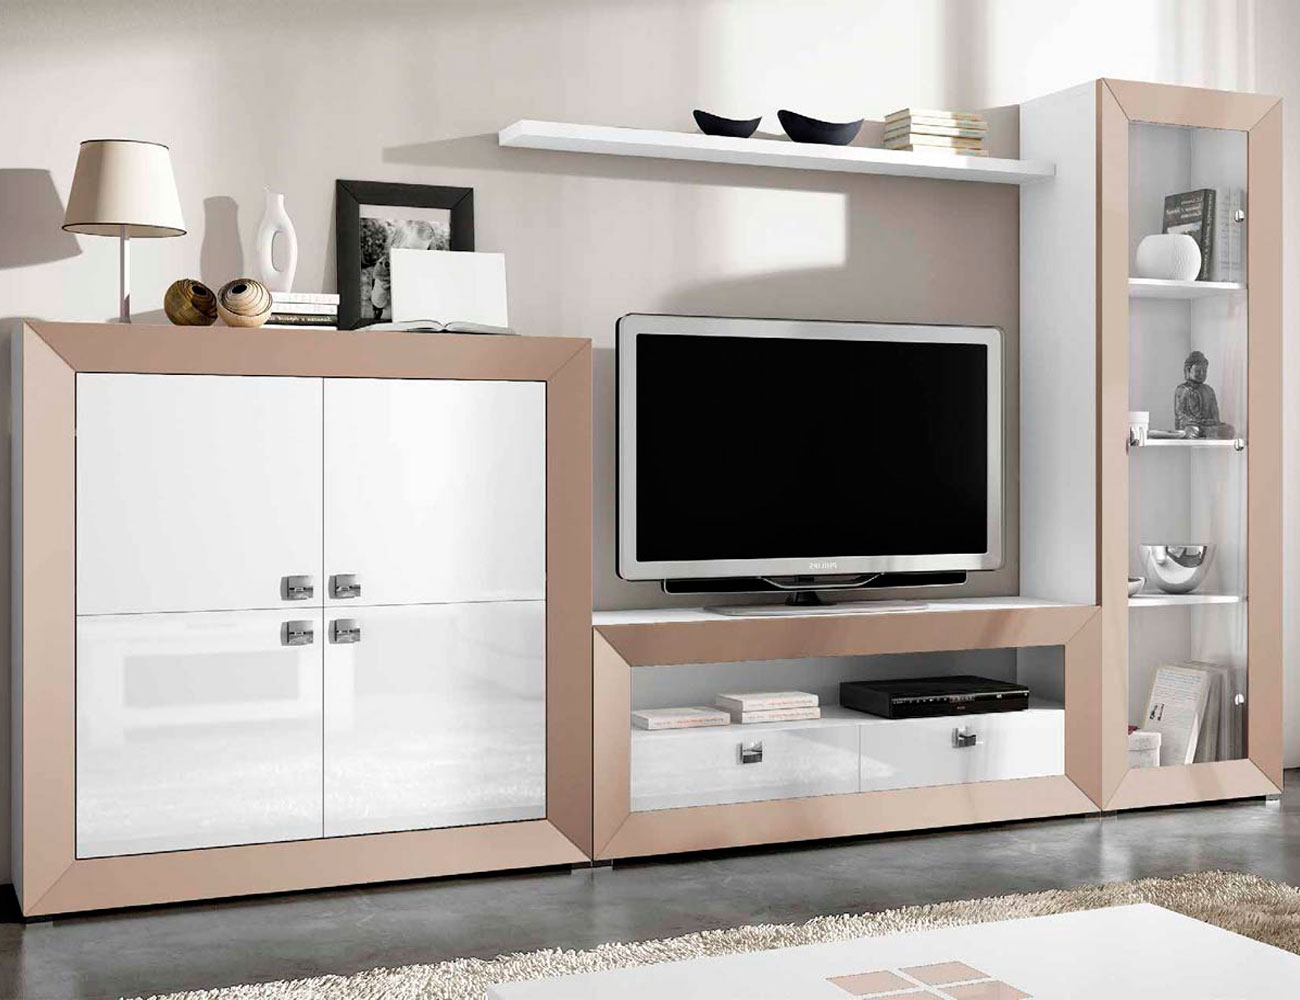 Mueble de sal n modular moderno lacado 2452 factory for Muebles salon modernos online